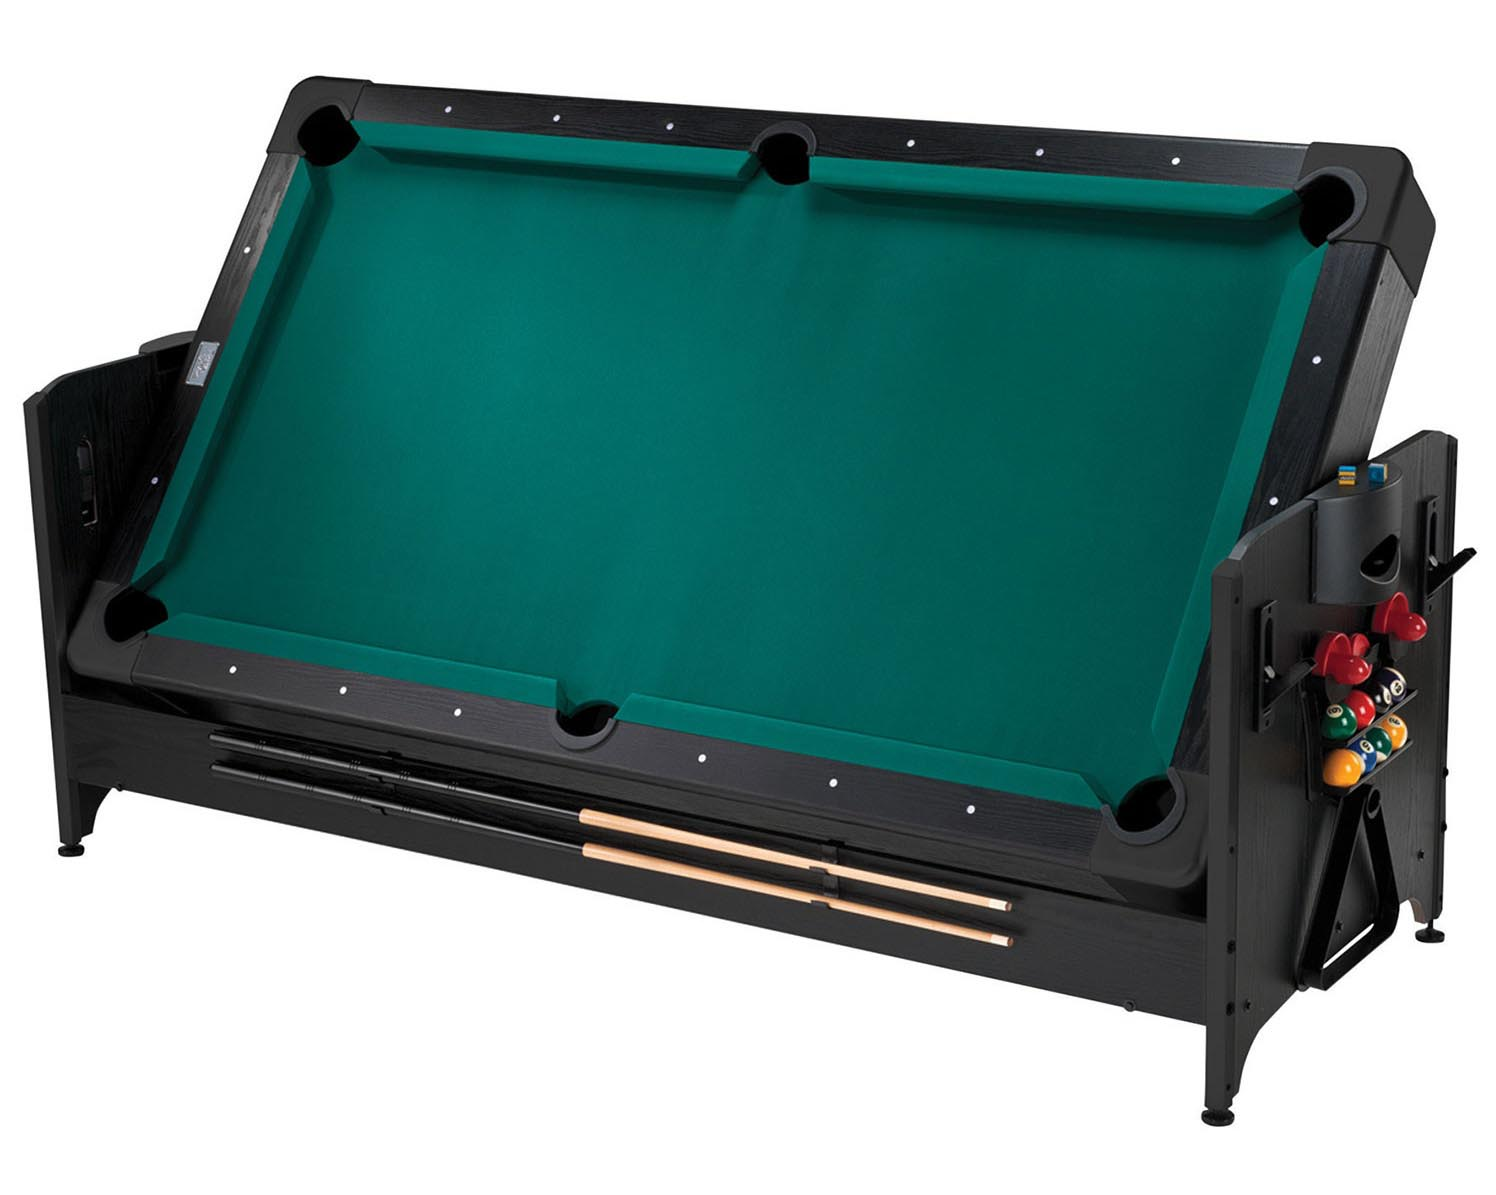 Table 3-en-1 tennis de table billard hockey sur coussin d'air de 32 po Pockey de FatCat.jpg